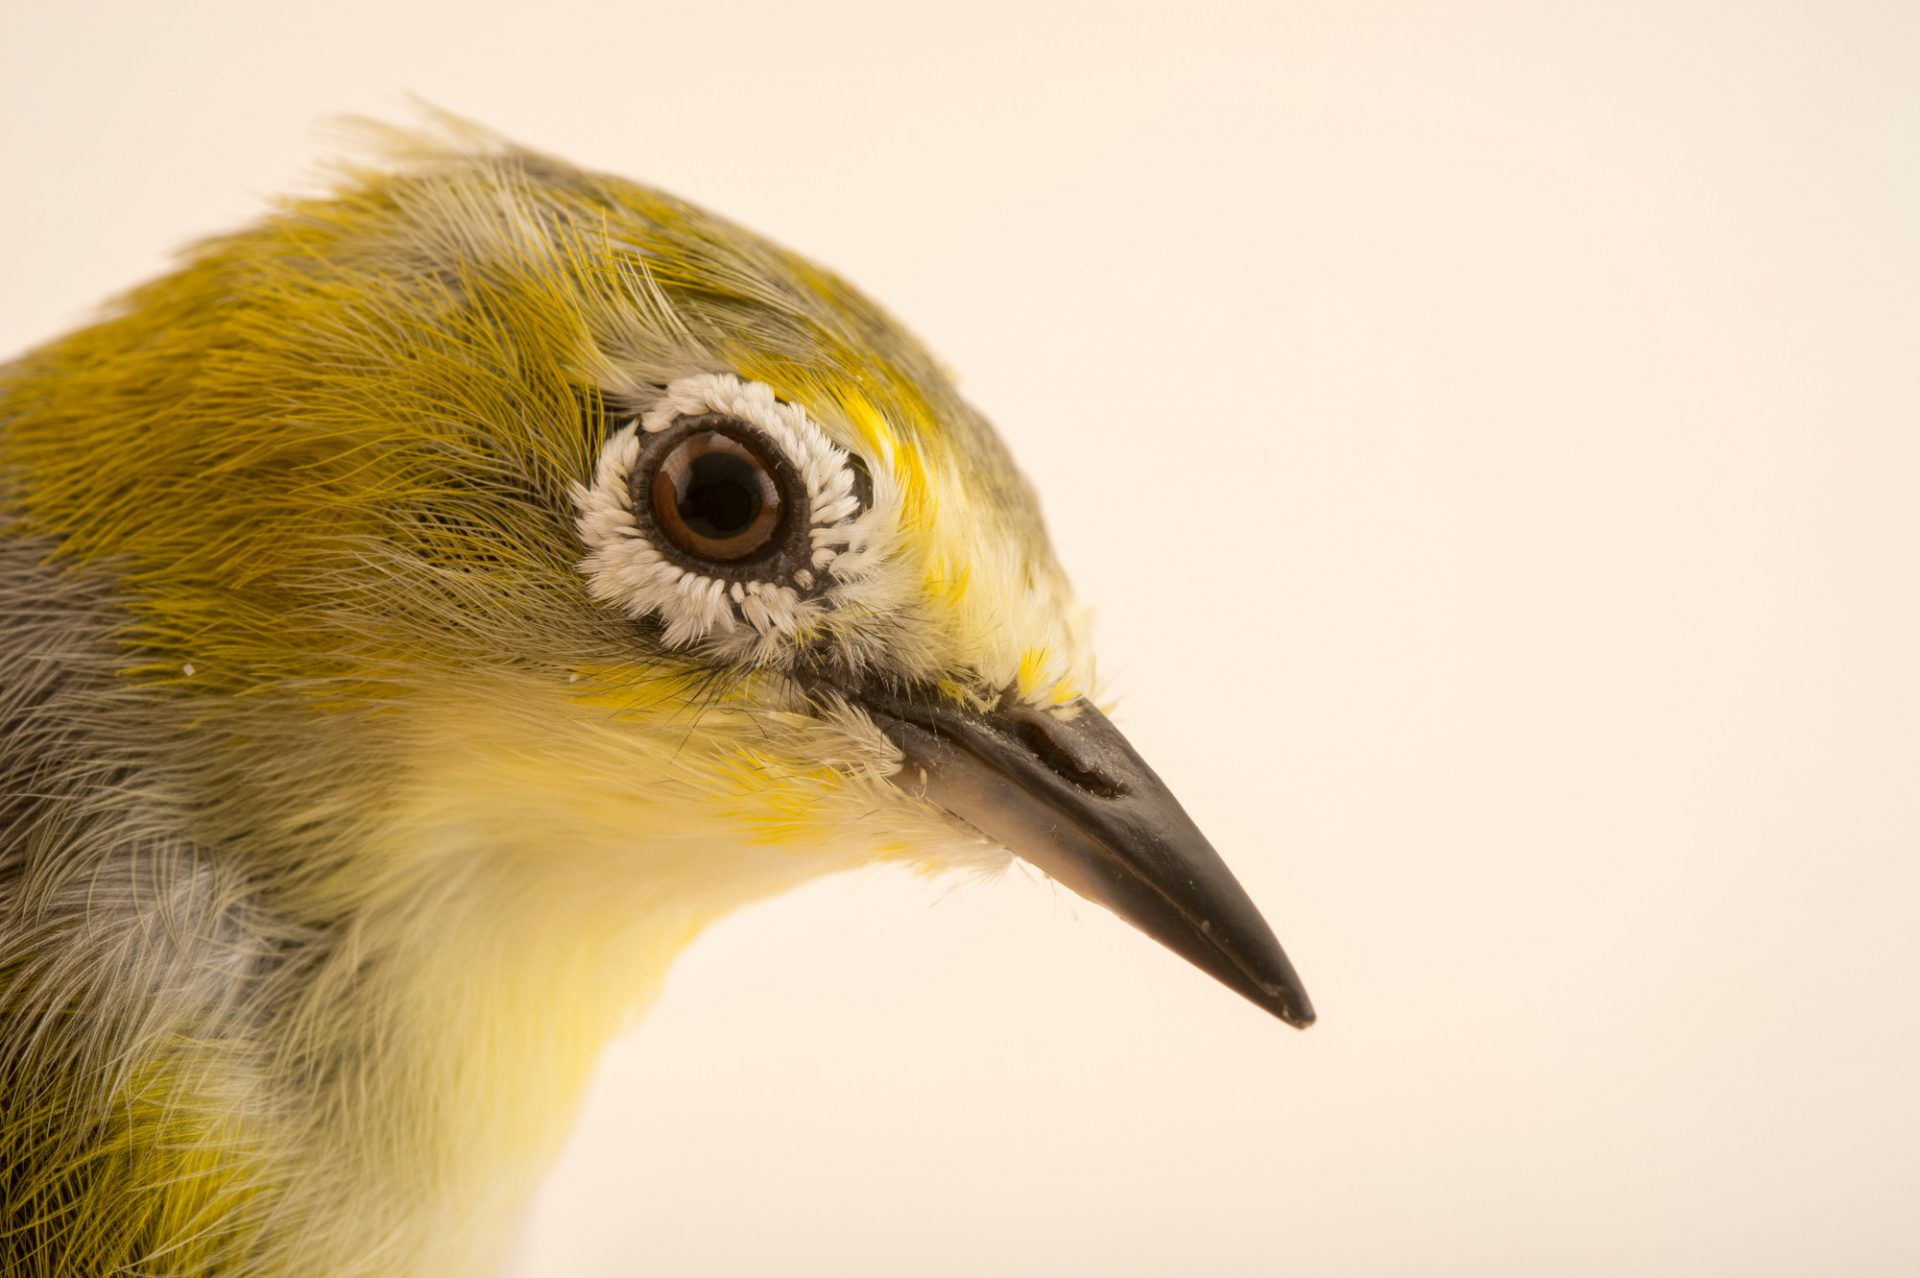 Photo: African yellow white-eye (Zosterops senegalensis) from the private collection of Cornel Roels of Choussy, France.